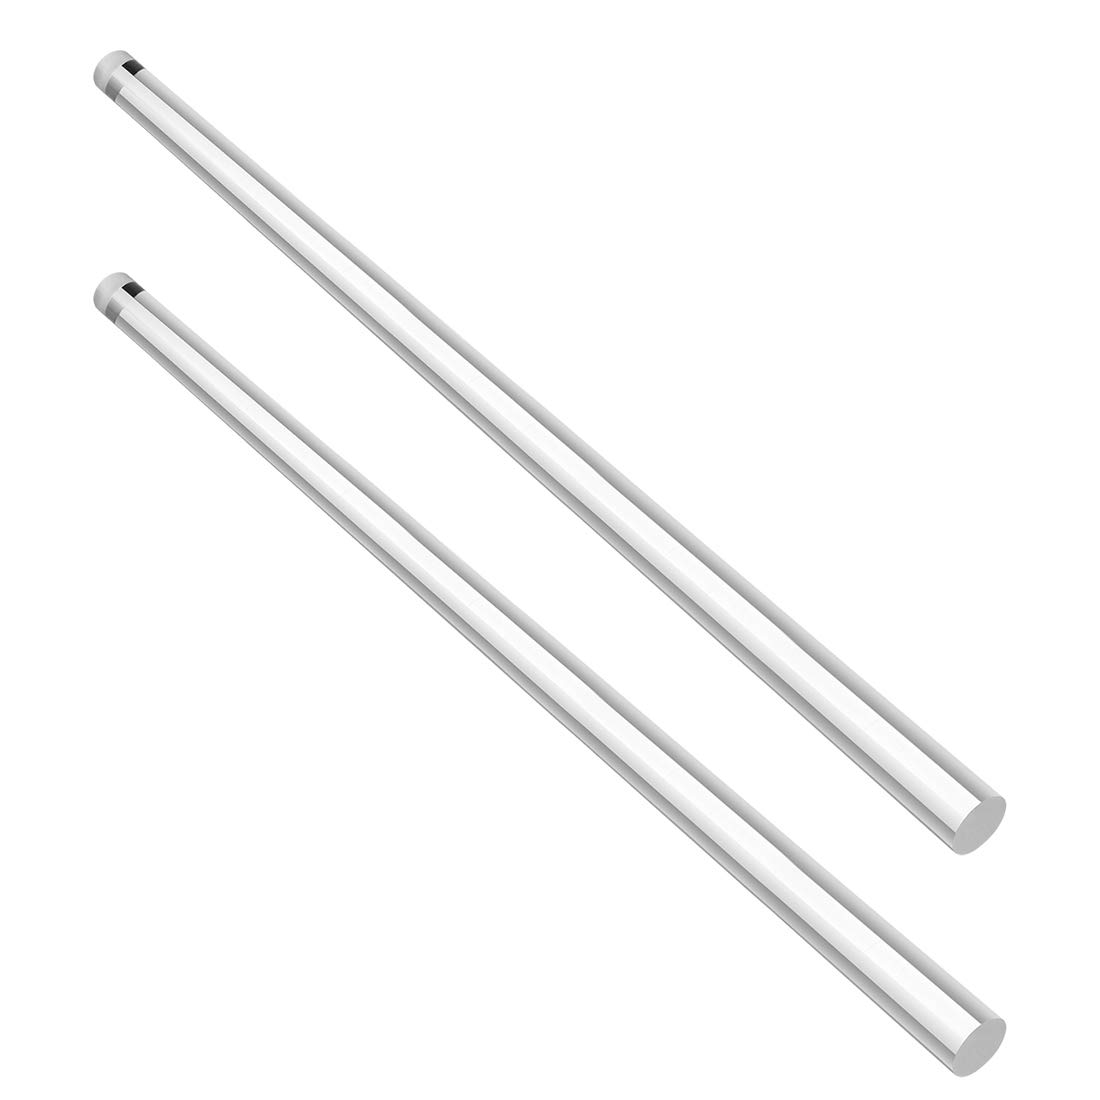 sourcing map 5mmx250mm Clear Solid Acrylic Round Rod PMMA Bar 4pcs